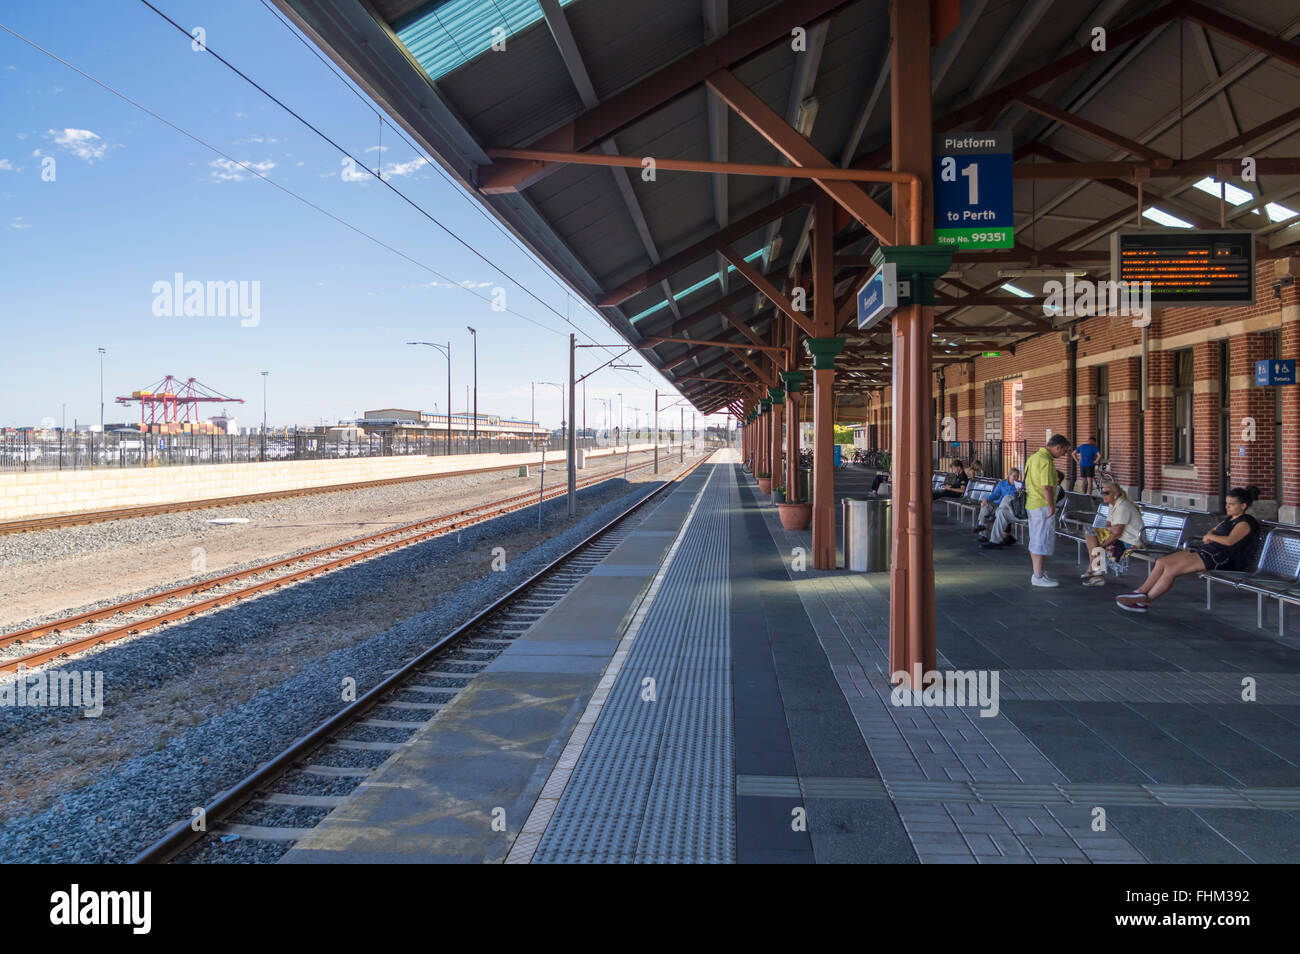 Platform 1 of Fremantle railroad station. Commuters waiting for Transperth train to Perth. Fremantle, Western Australia. - Stock Image